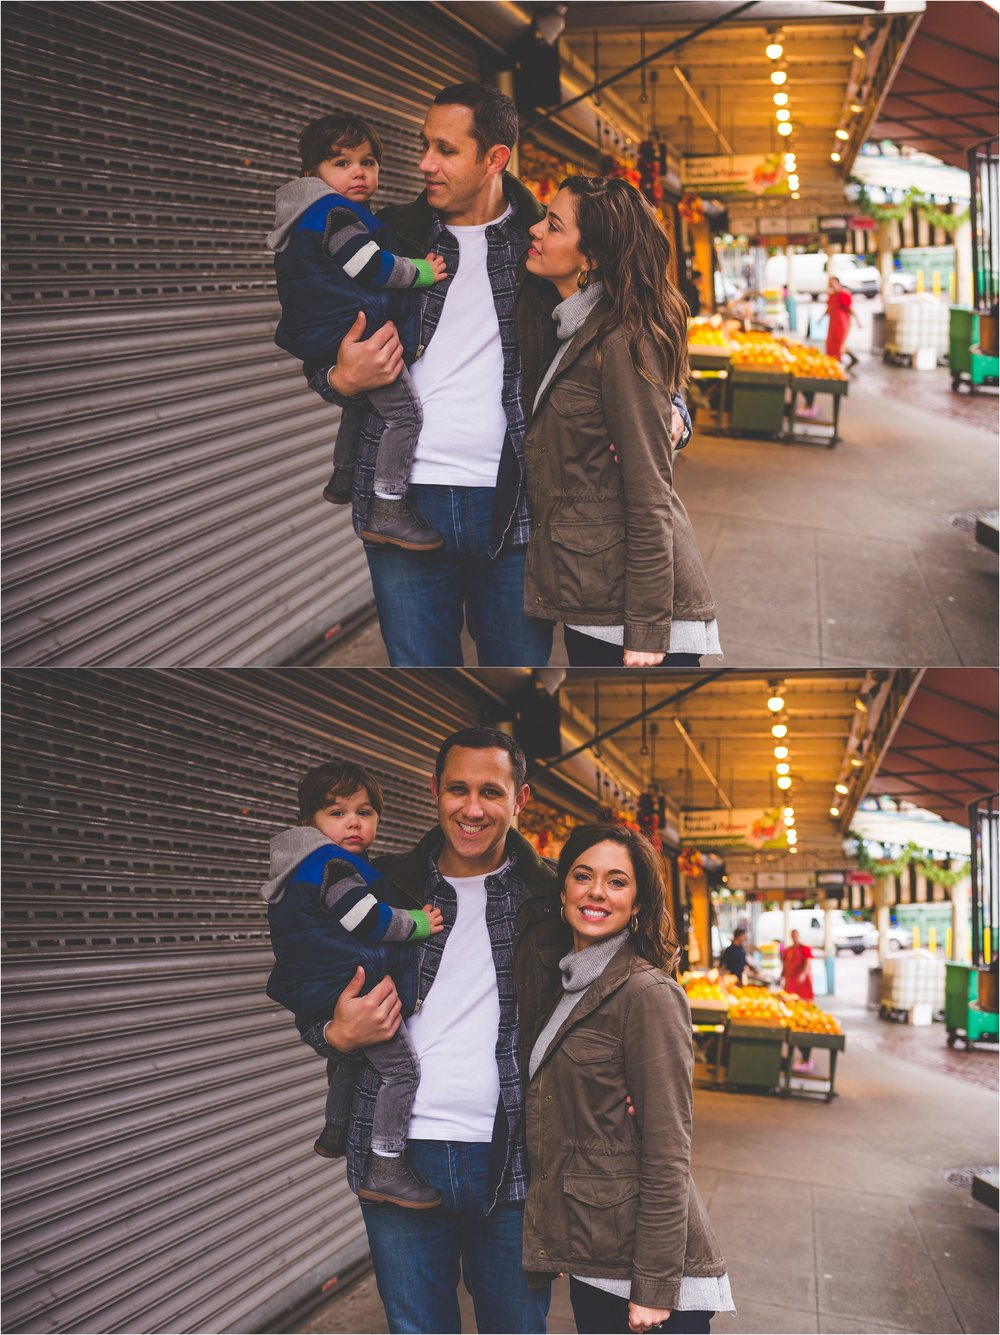 downtown-seattle-pike-place-market-family-session-jannicka-mayte-seattle-wa-family-photographer_0007.jpg